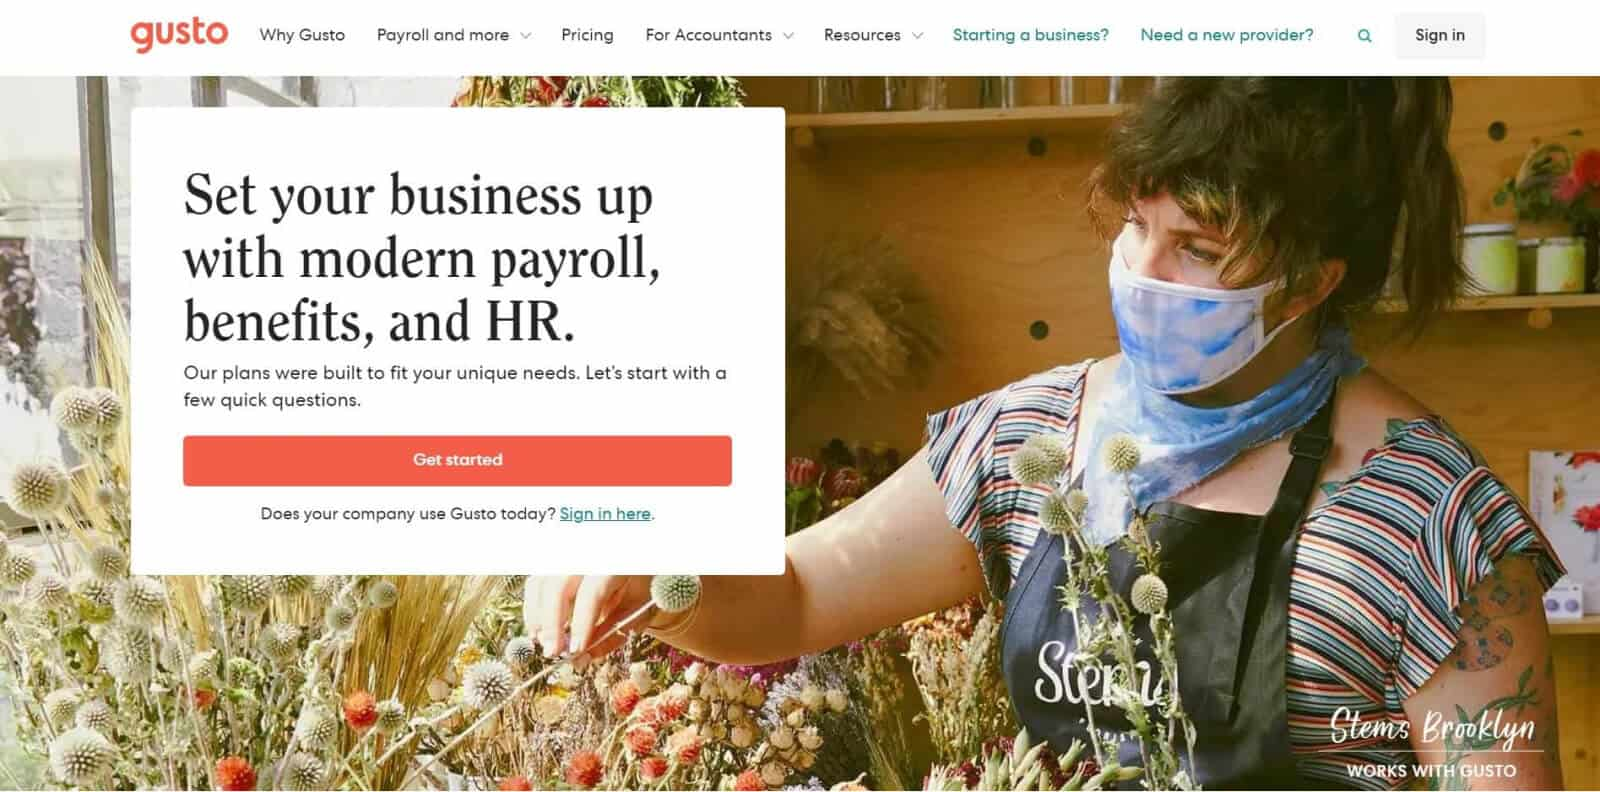 Gusto has an easy-to-navigate user interface that simplifies payroll management